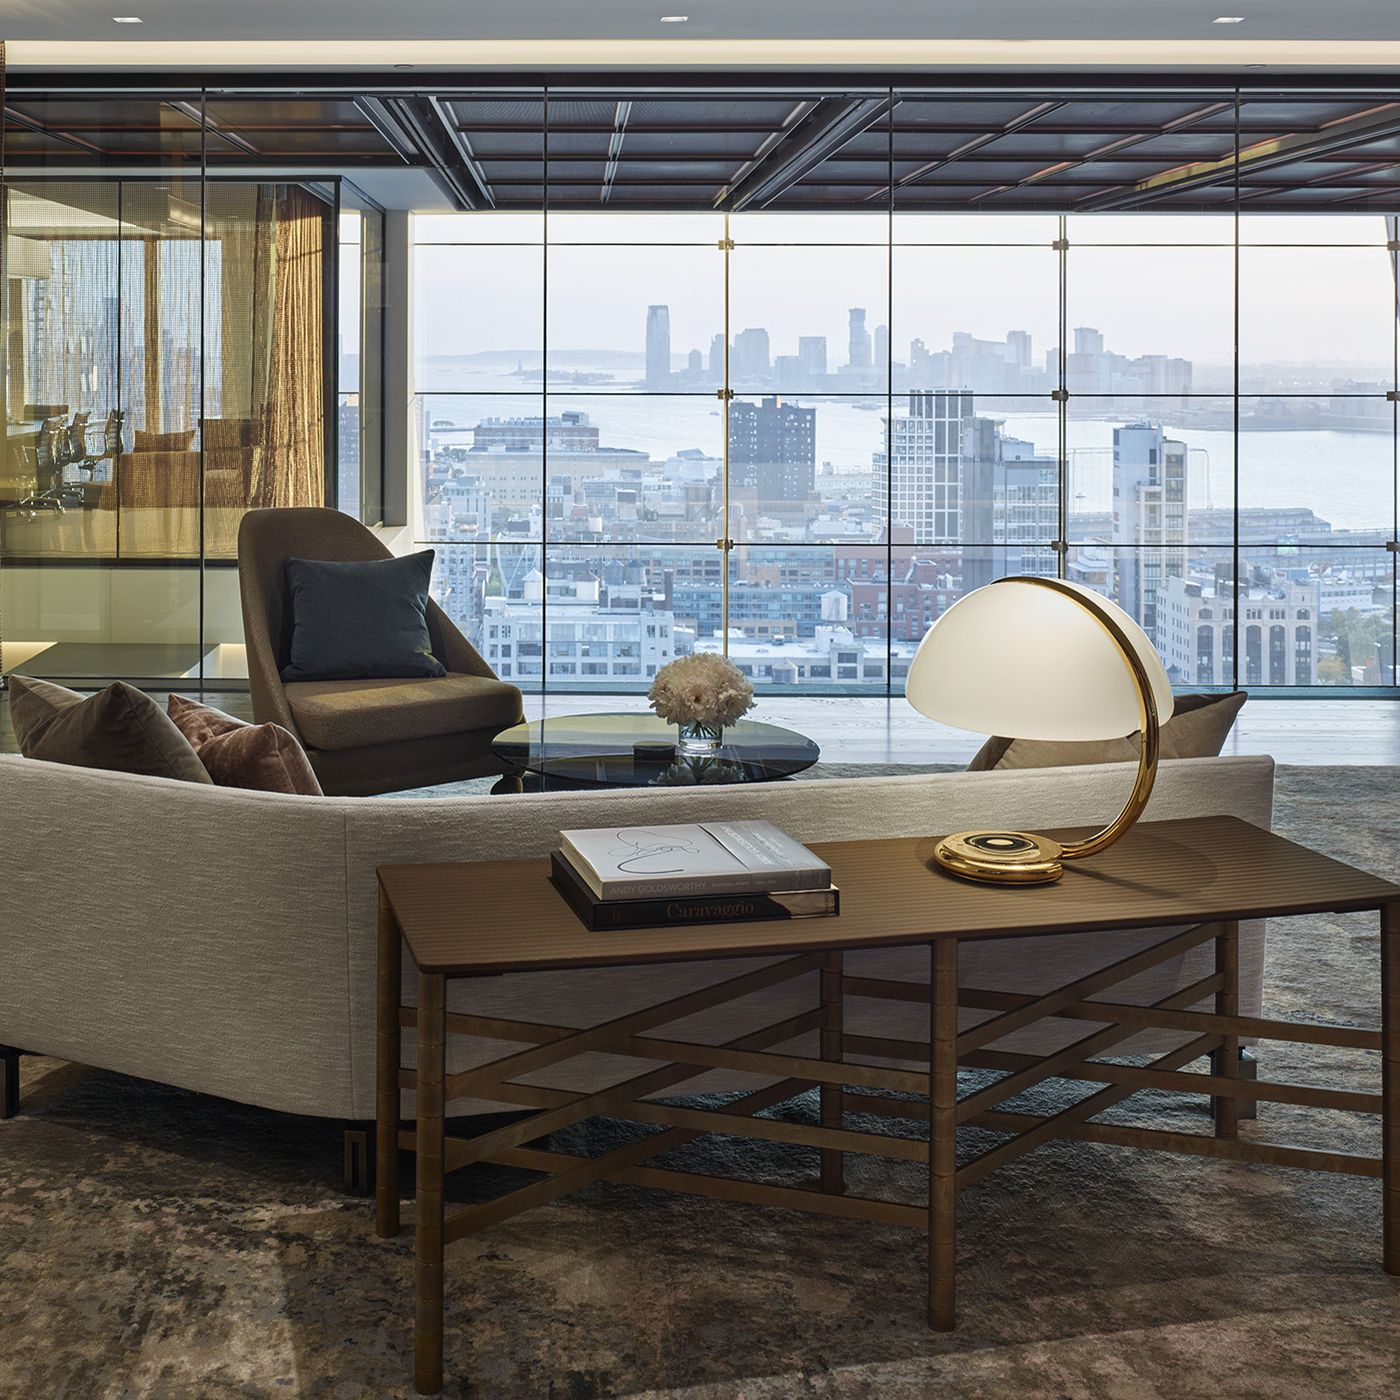 Related Sells The Hudson Yards Experience At Its Tech Forward Sales